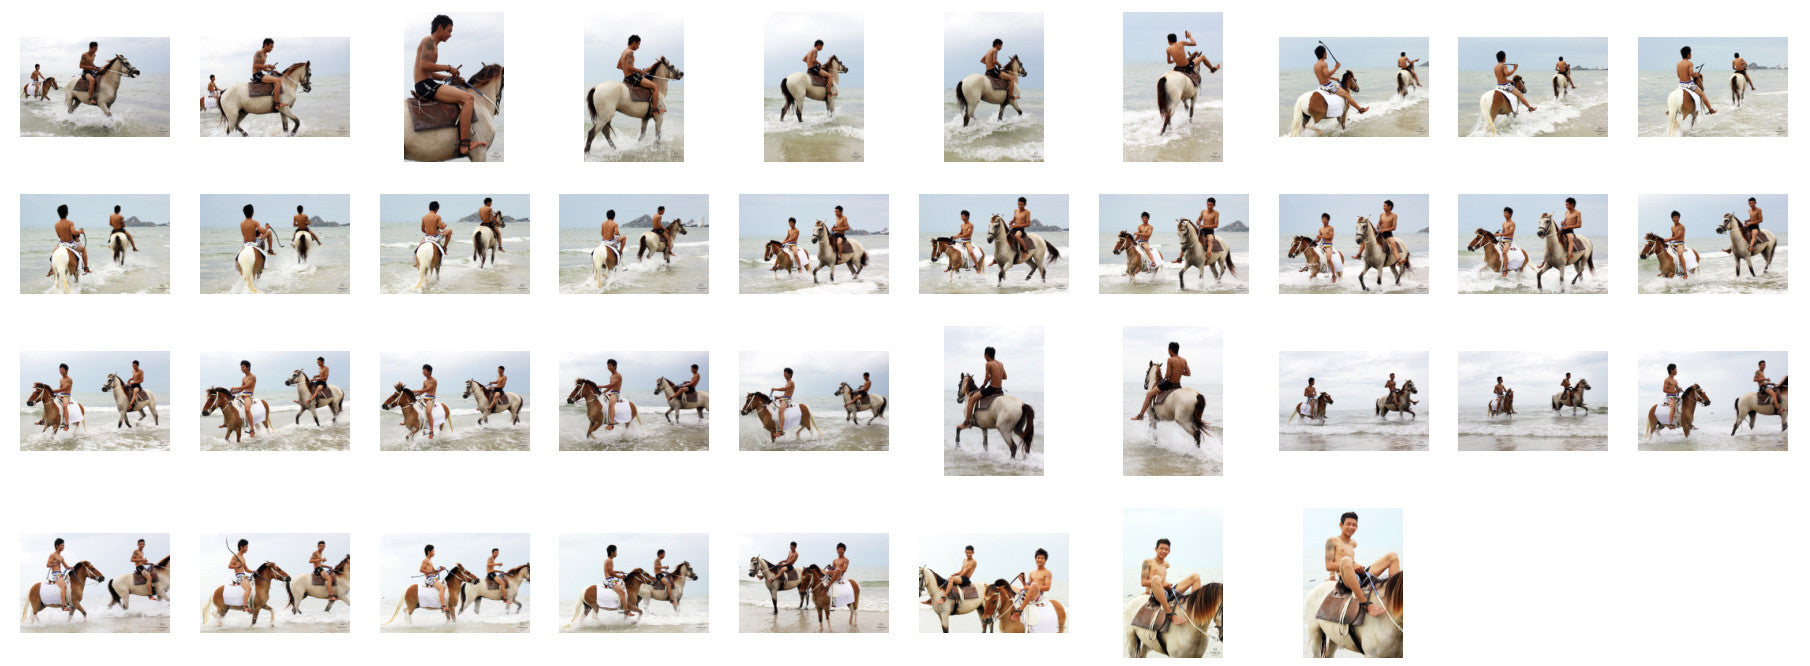 Thaksin in Black Spandex Riding with Saddle on Buckskin Horse, Part 3 - Riding.Vision